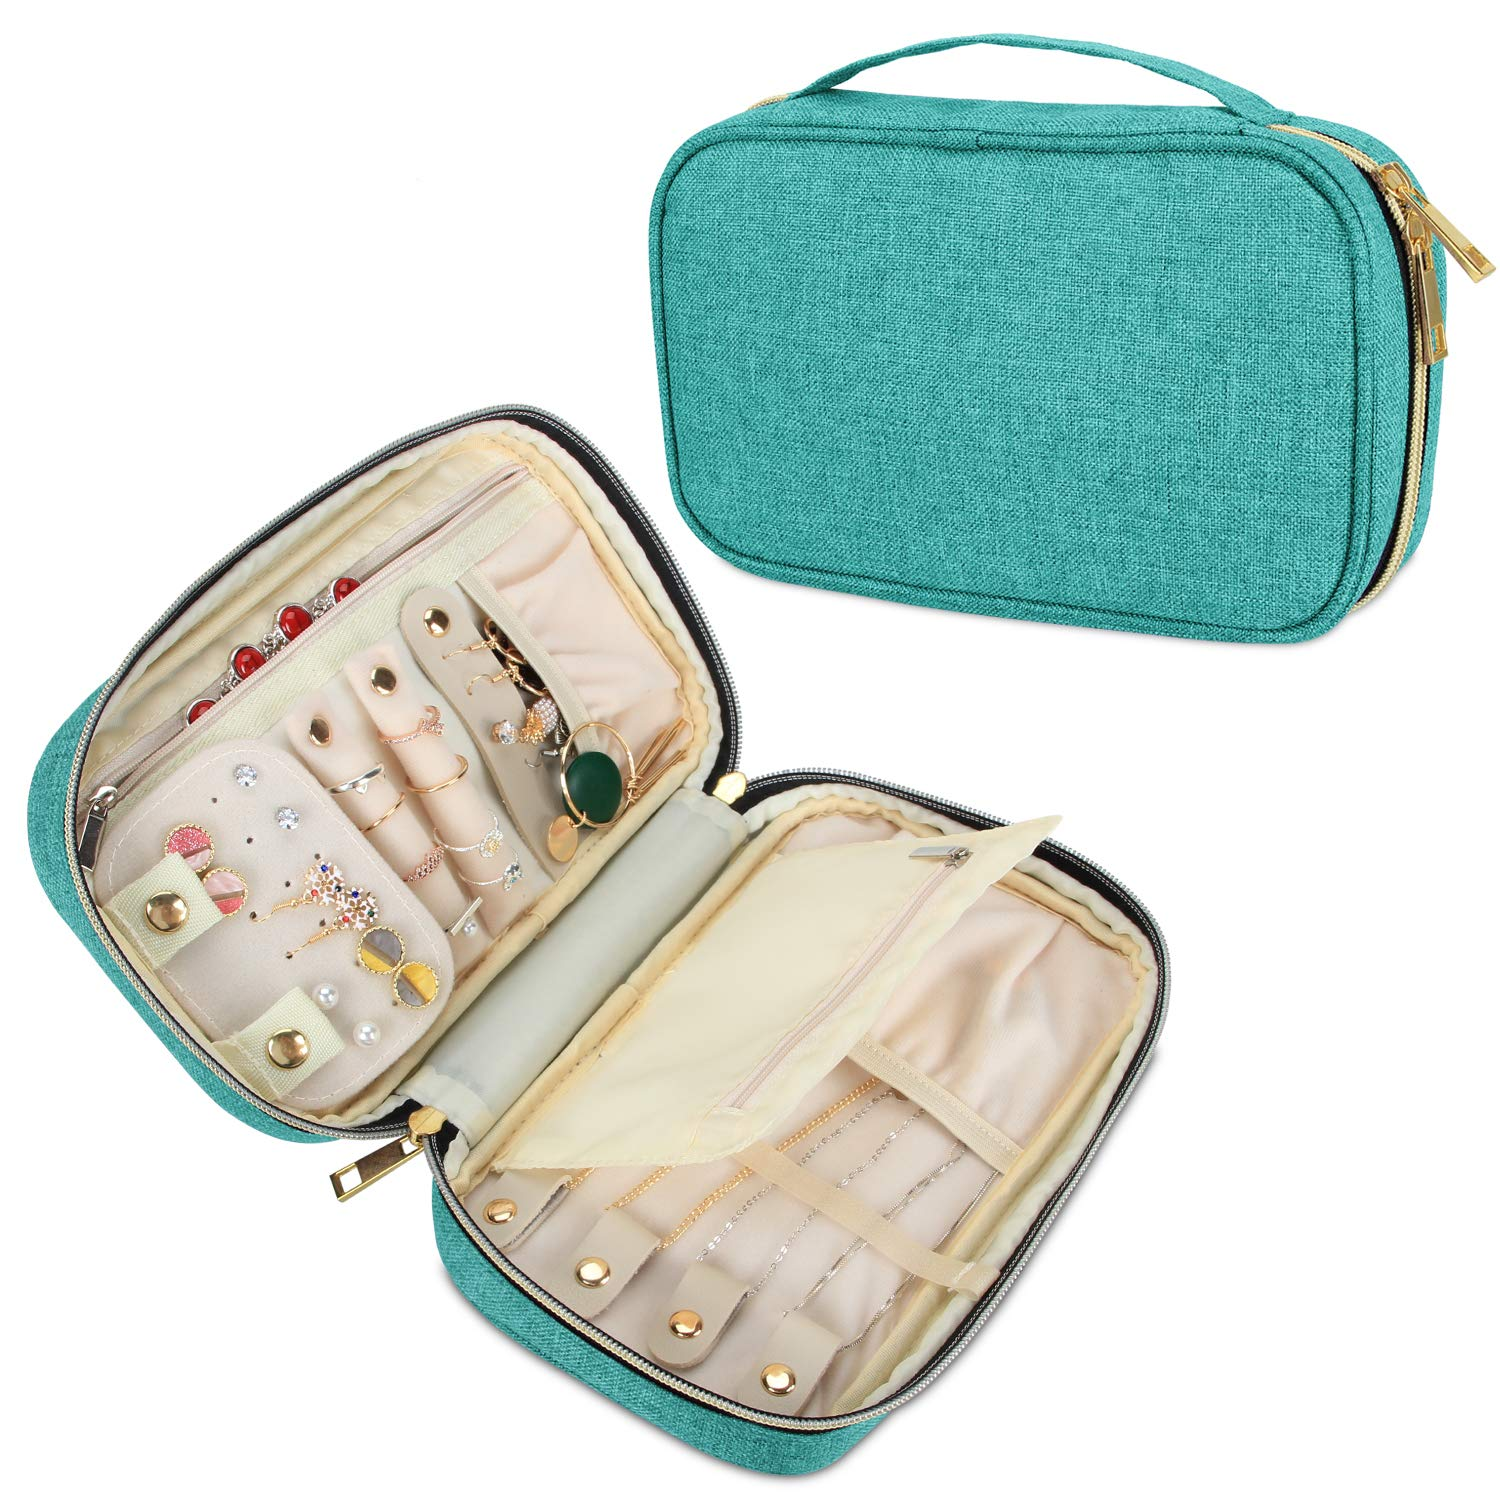 Teamoy Travel Jewelry Organizer Case, Jewelry Storage Bag for Necklaces, Earrings, Bracelets, Rings, Brooches and More, Medium, Green-(Bag Only)